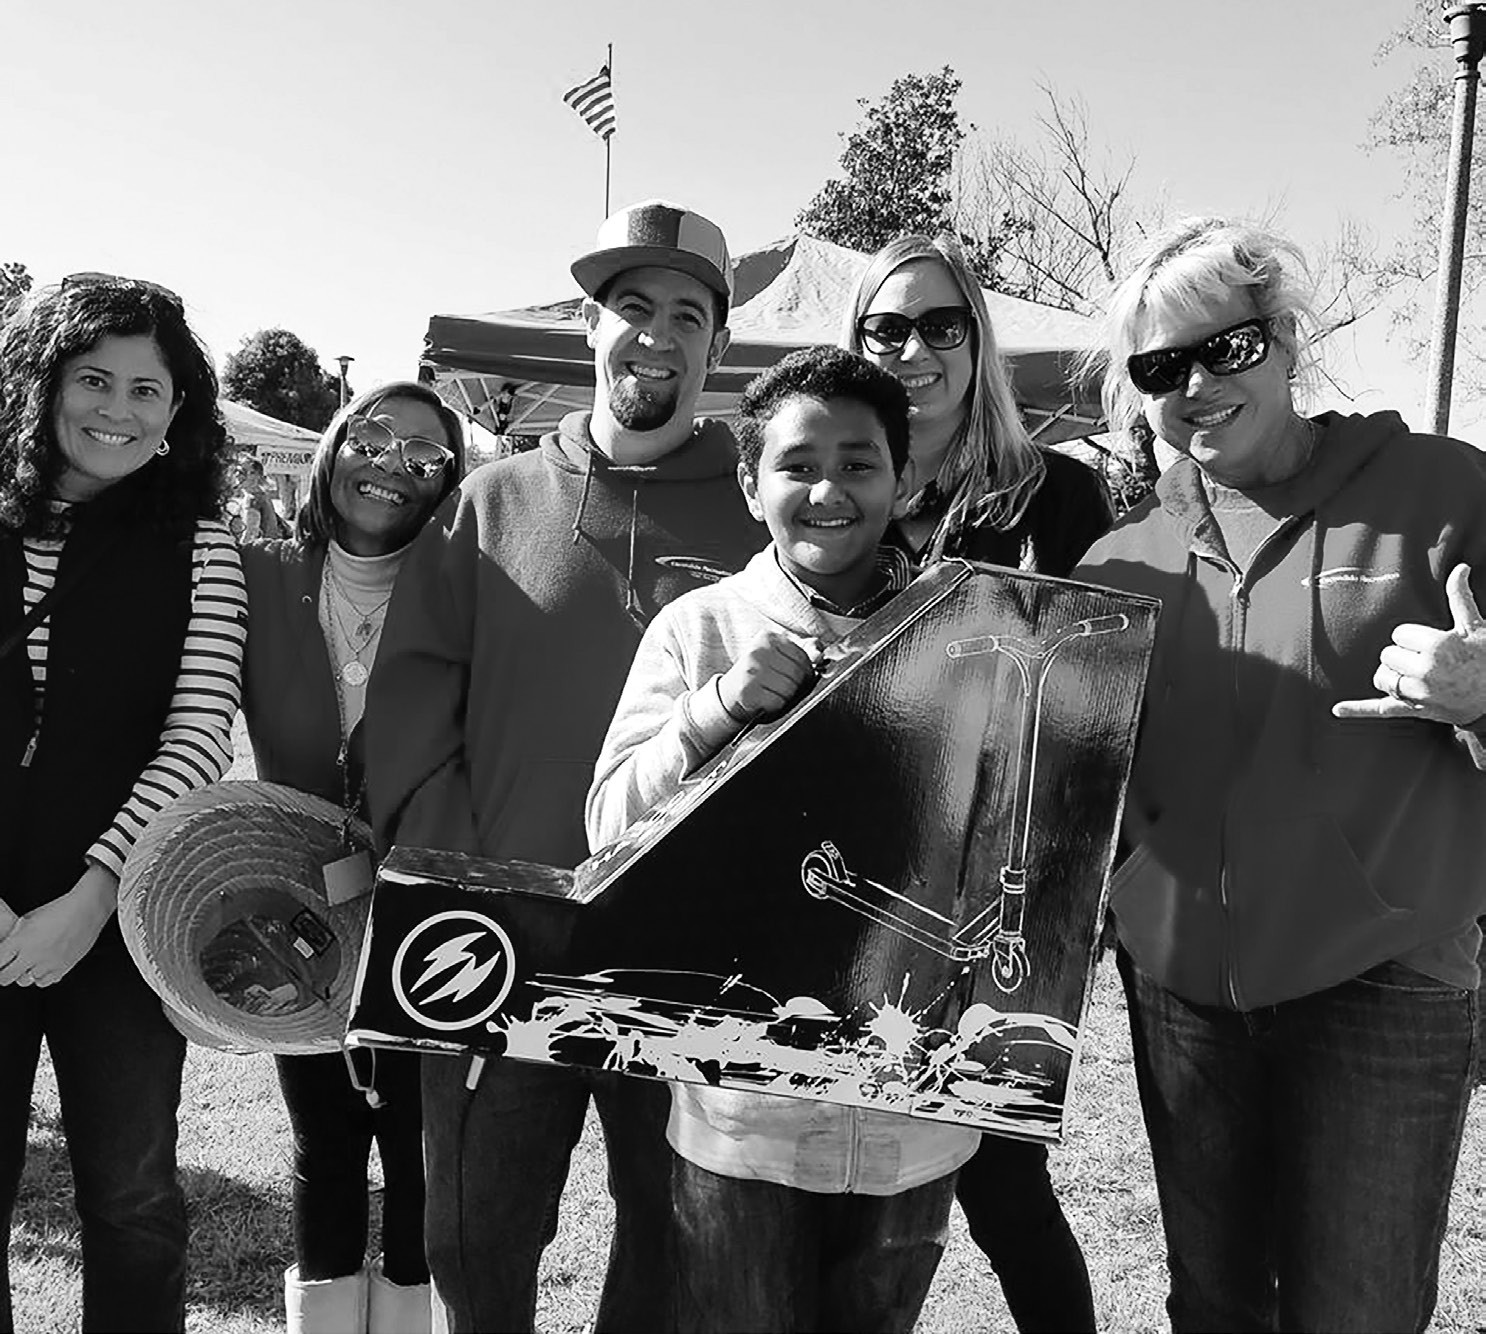 There was an amazing community turnout at the Washington Park Skate Plaza Rally. The day ended with Carlos Vitale winning a new scooter, presented by Councilmember Olga Diaz and Escondido Community Services. This Havoc scooter was donated by The Spot Pro Scooter Industries.